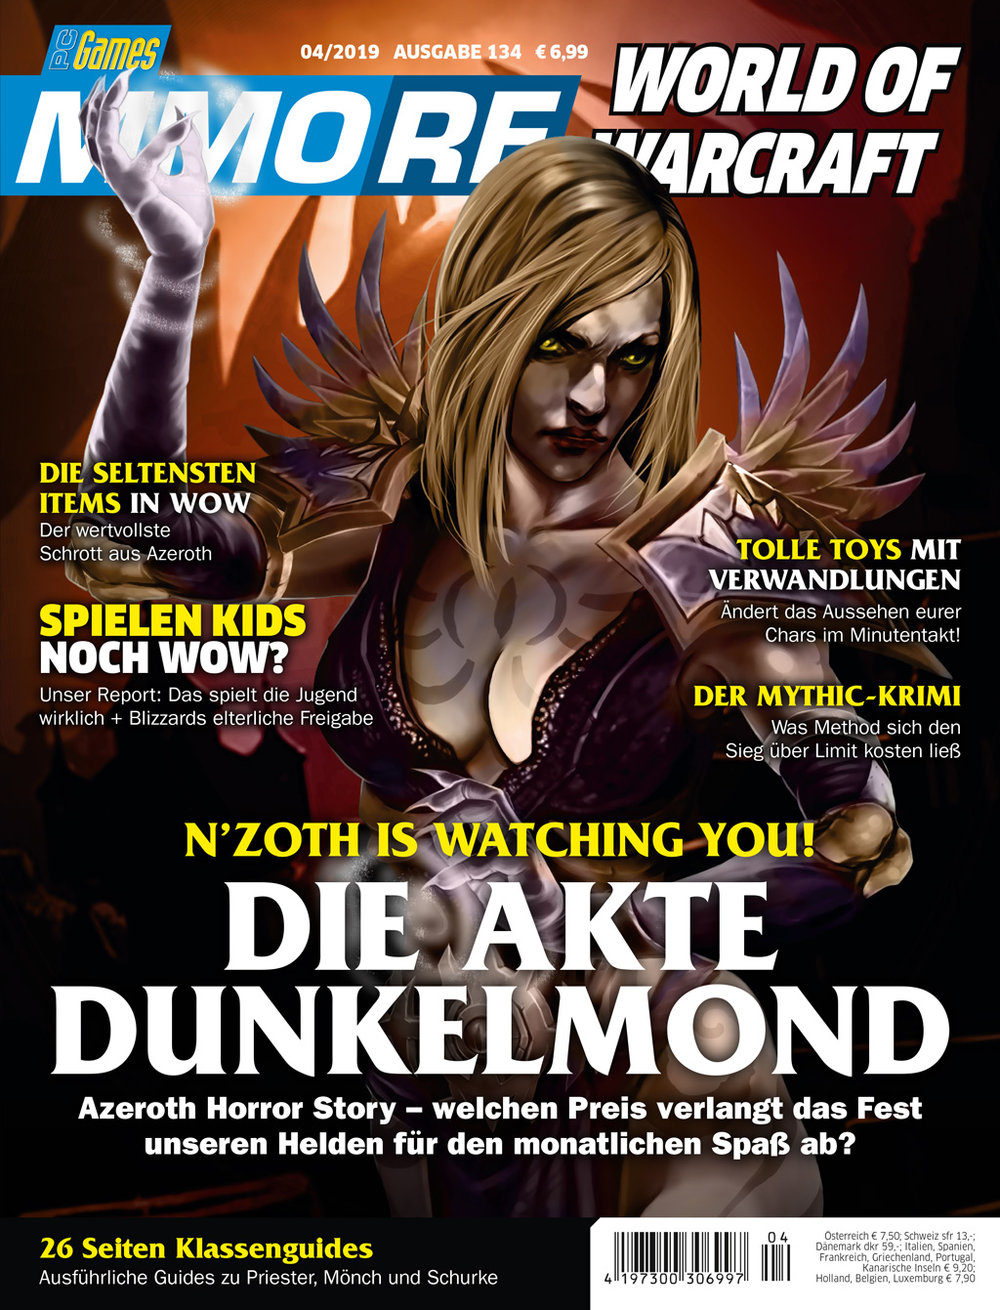 PC Games MMORE ePaper 04/2019